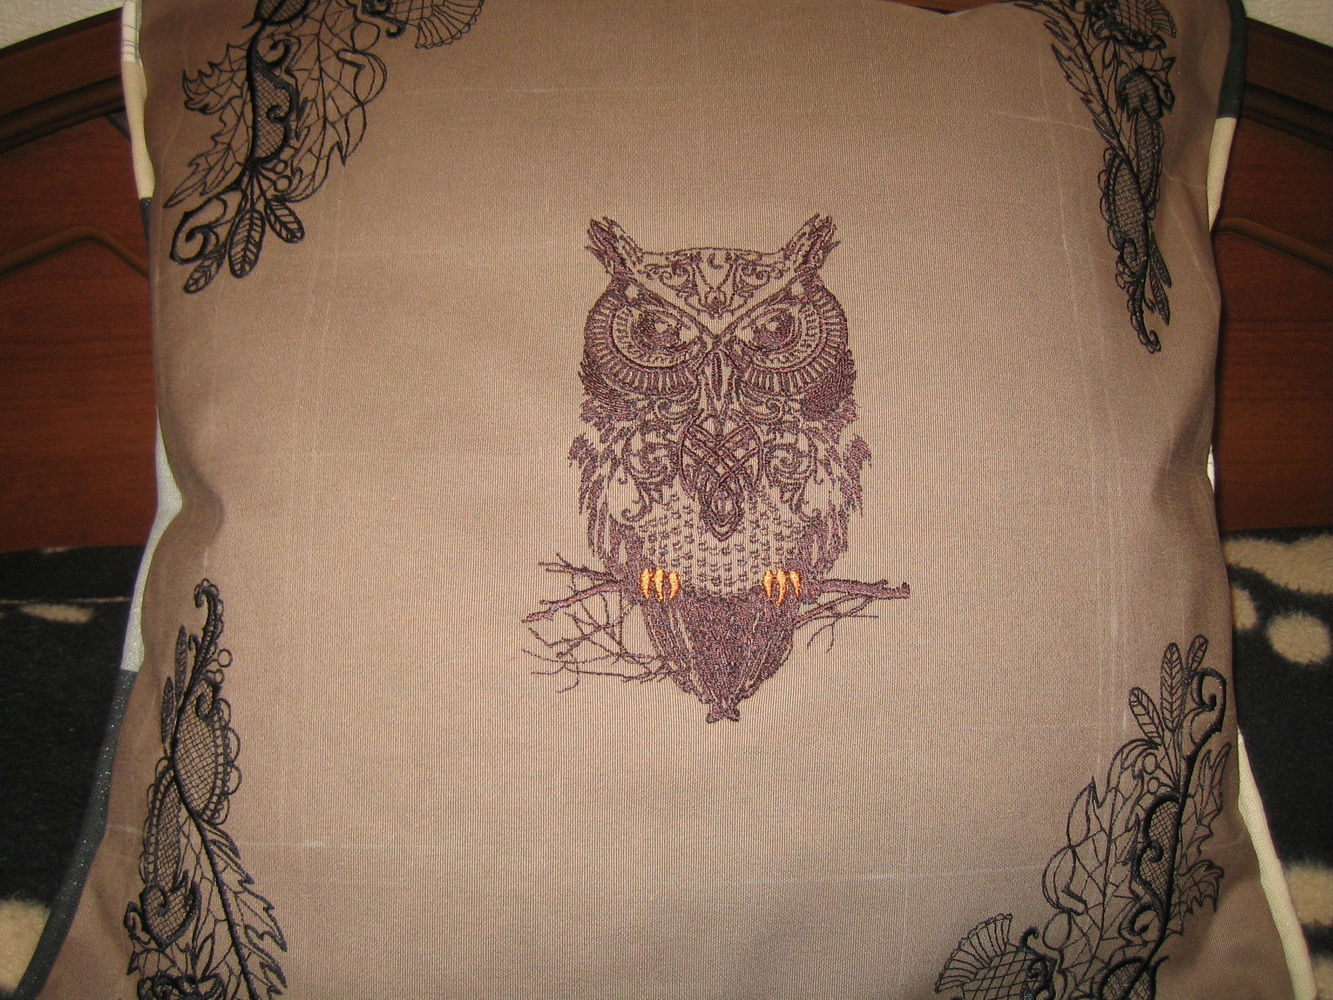 Tribal owl design embroidered on pillowcase